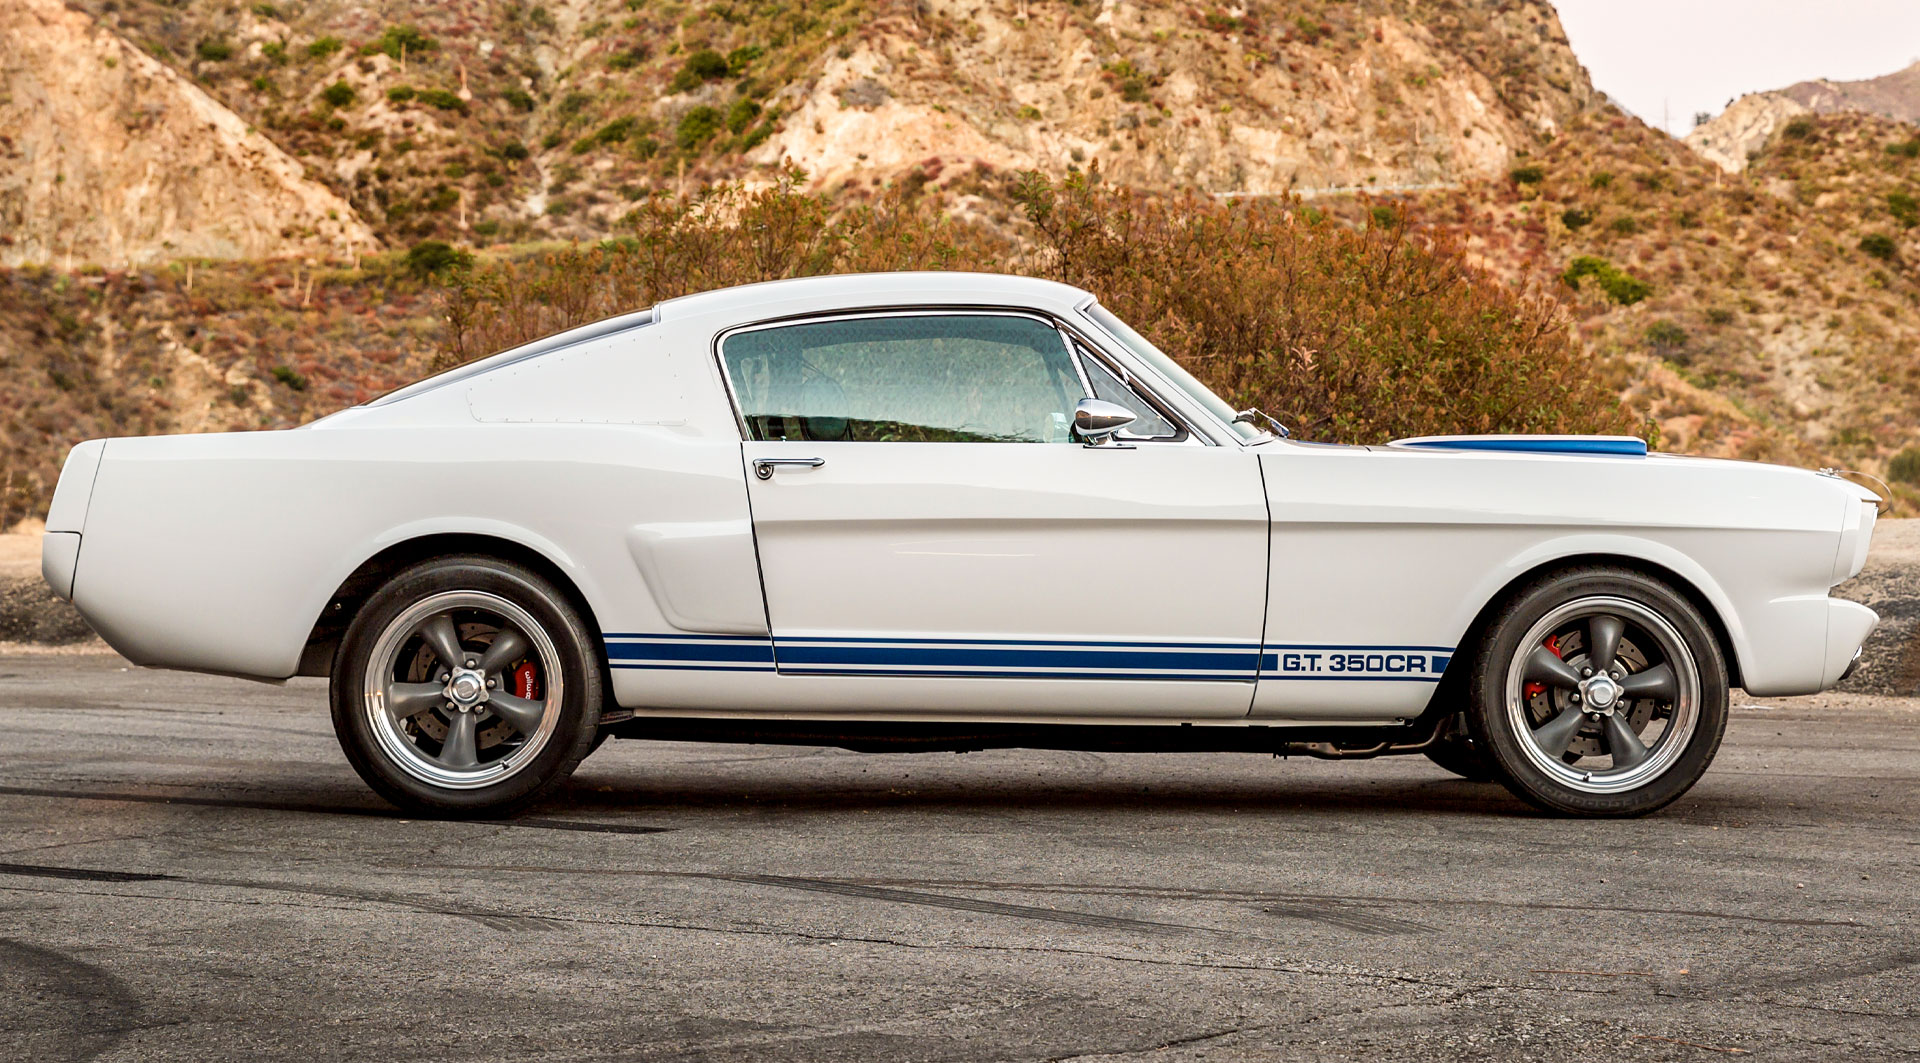 1965 Shelby GT350CR next to mountains